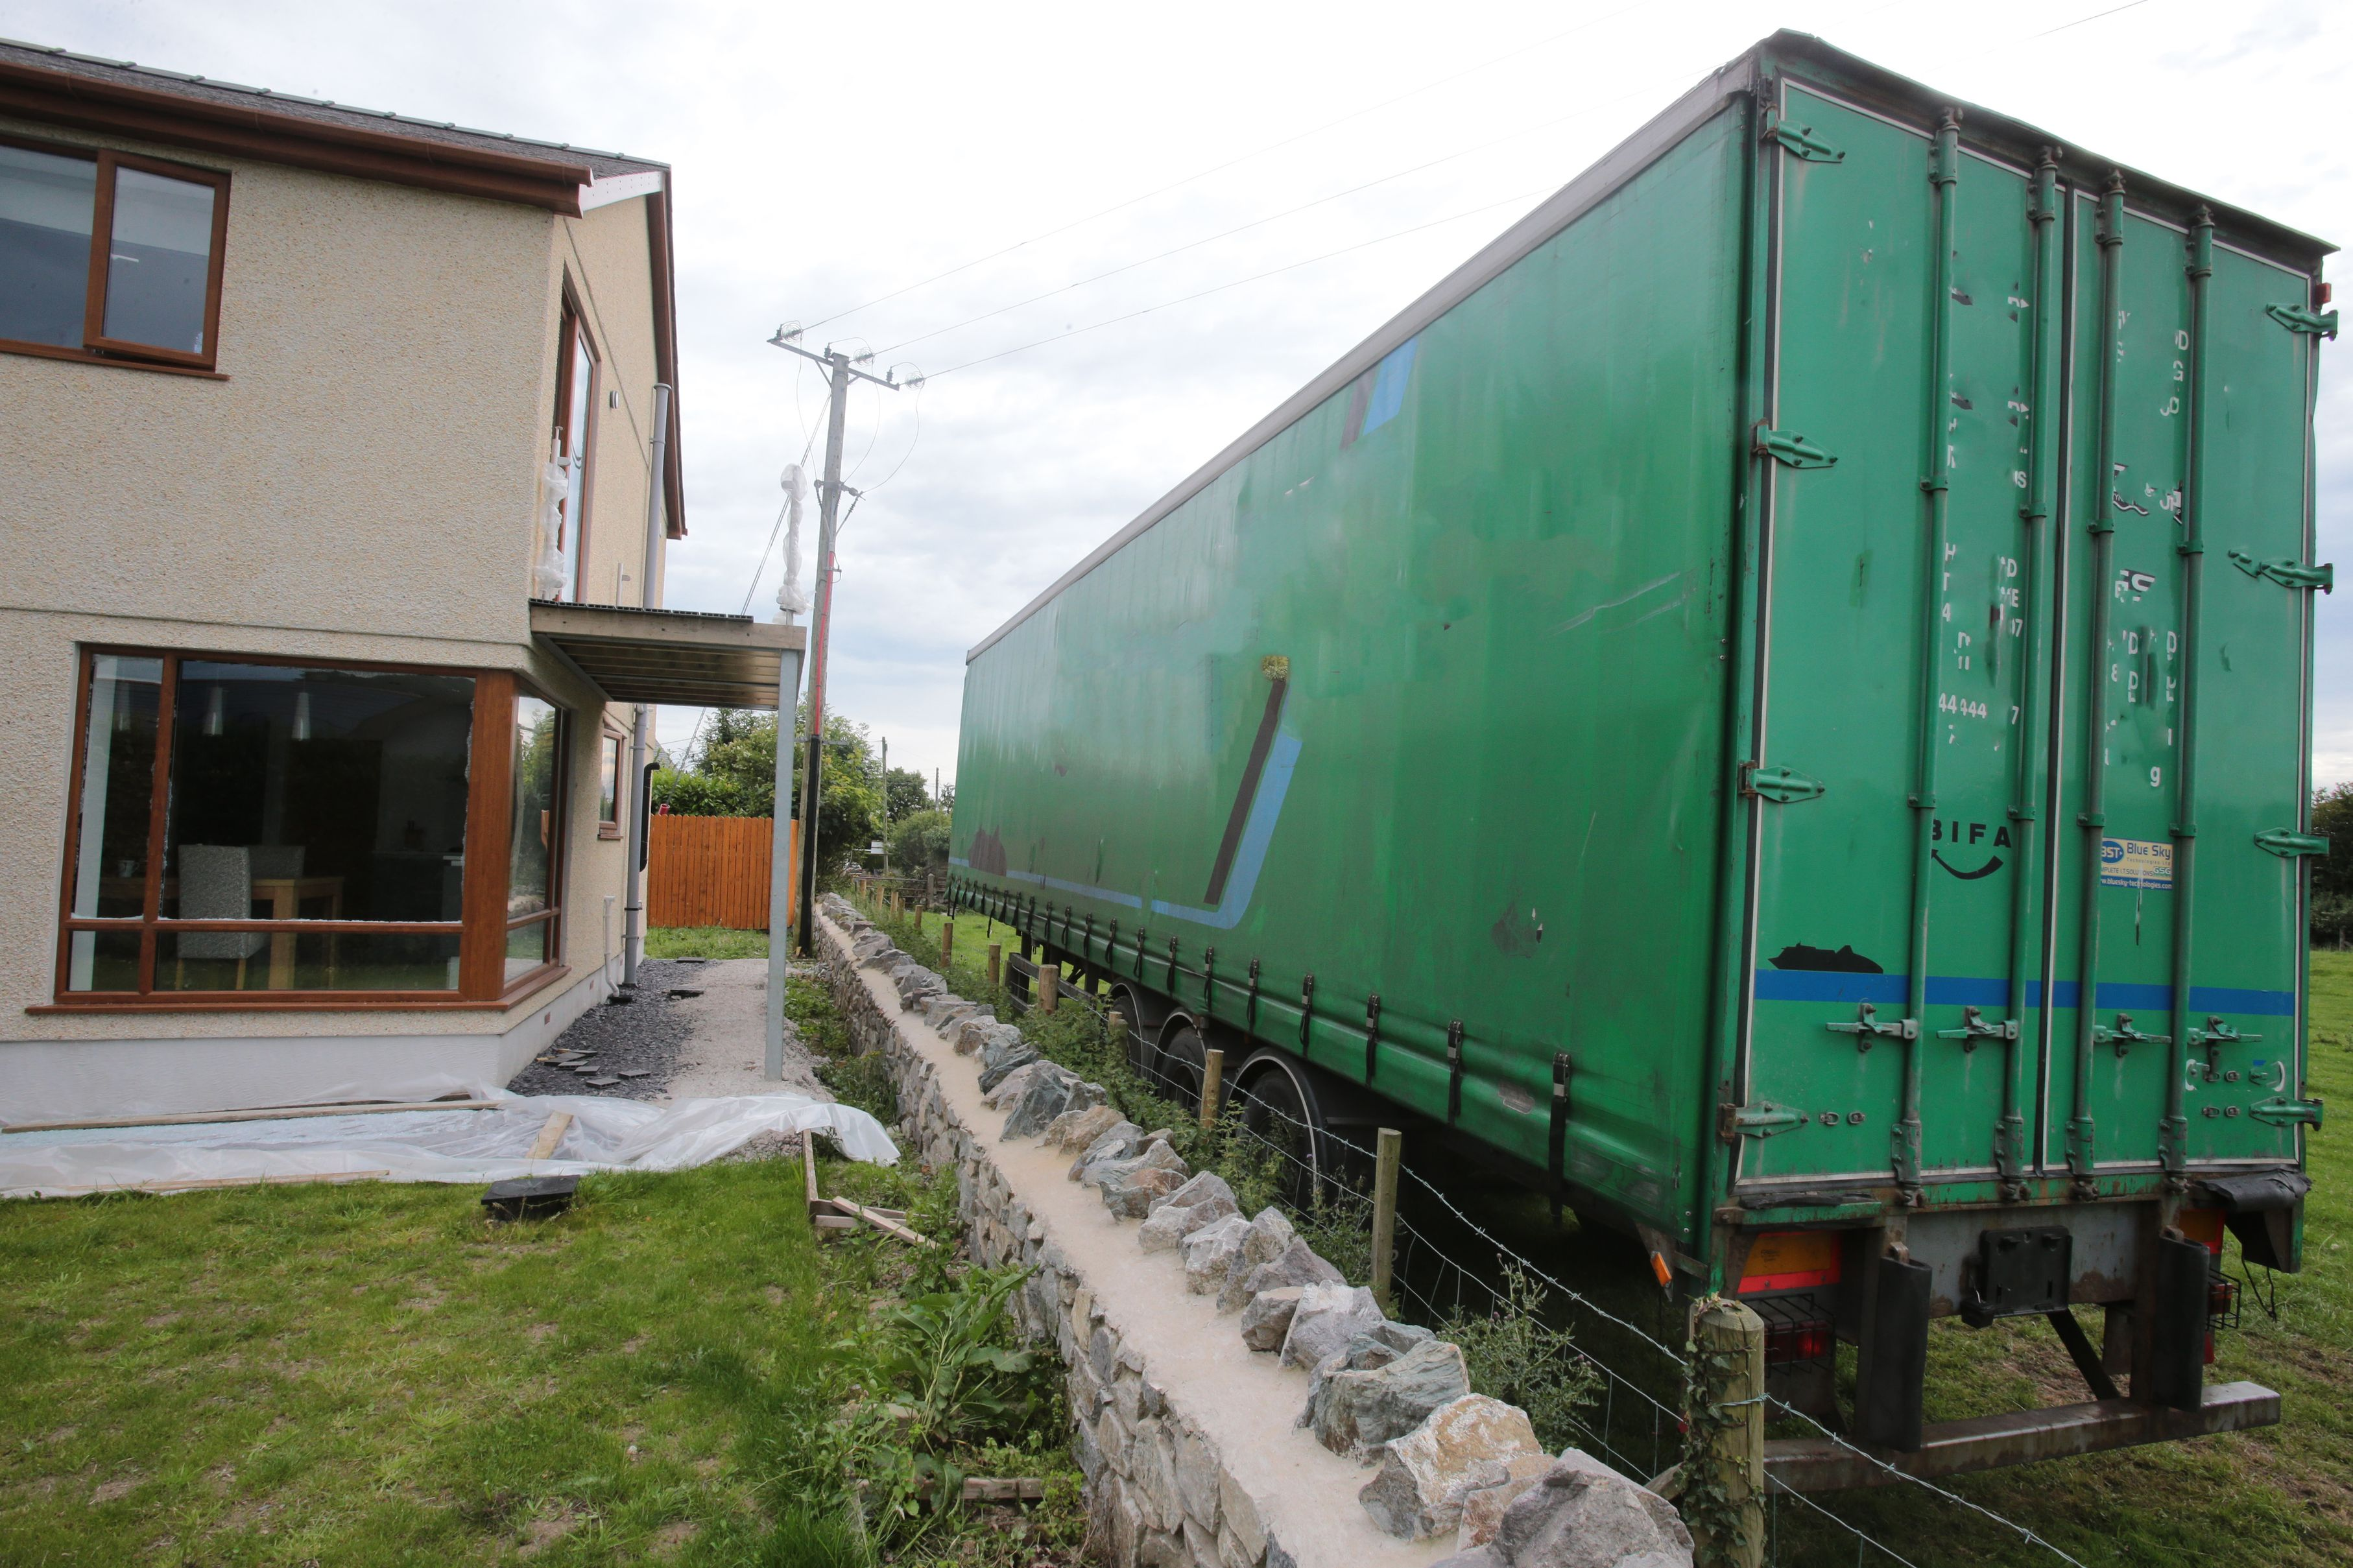 HGV container outside house